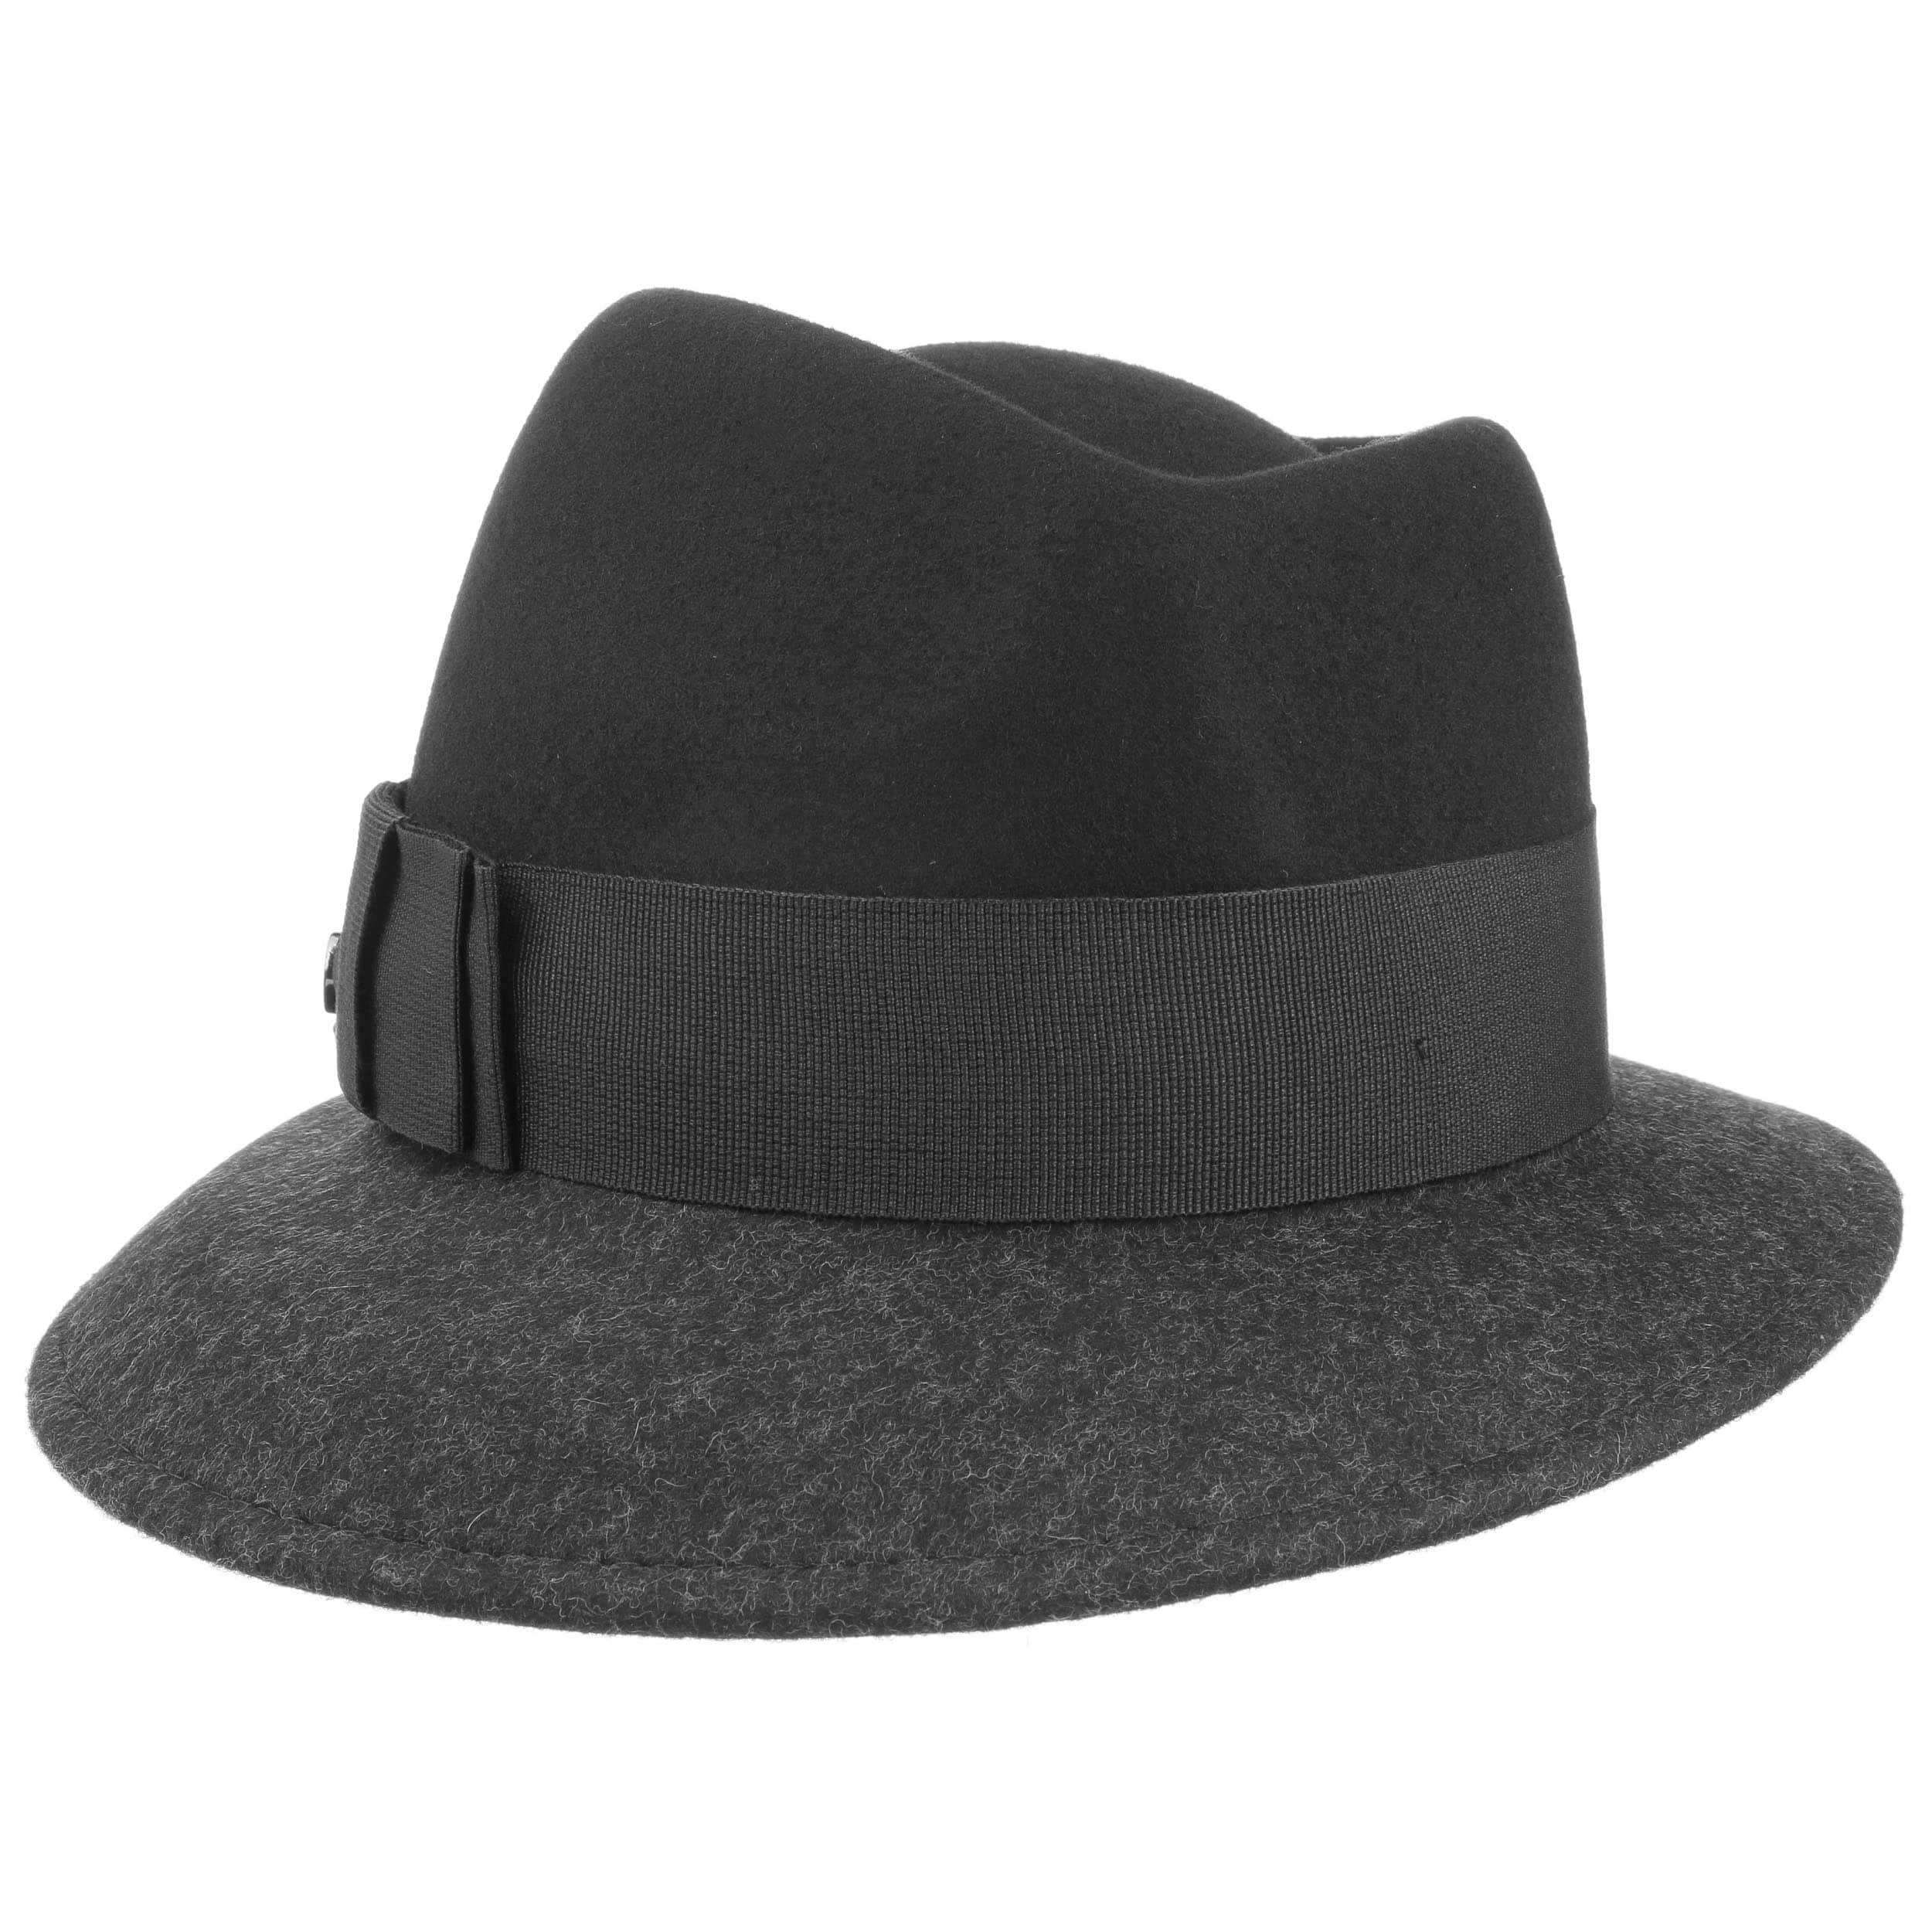 Top Hat Wool Felt Twotone by Lierys Classics Lierys Free Shipping 2018 New Best Sale Online Outlet Cheapest Price Cheap From China cOno3